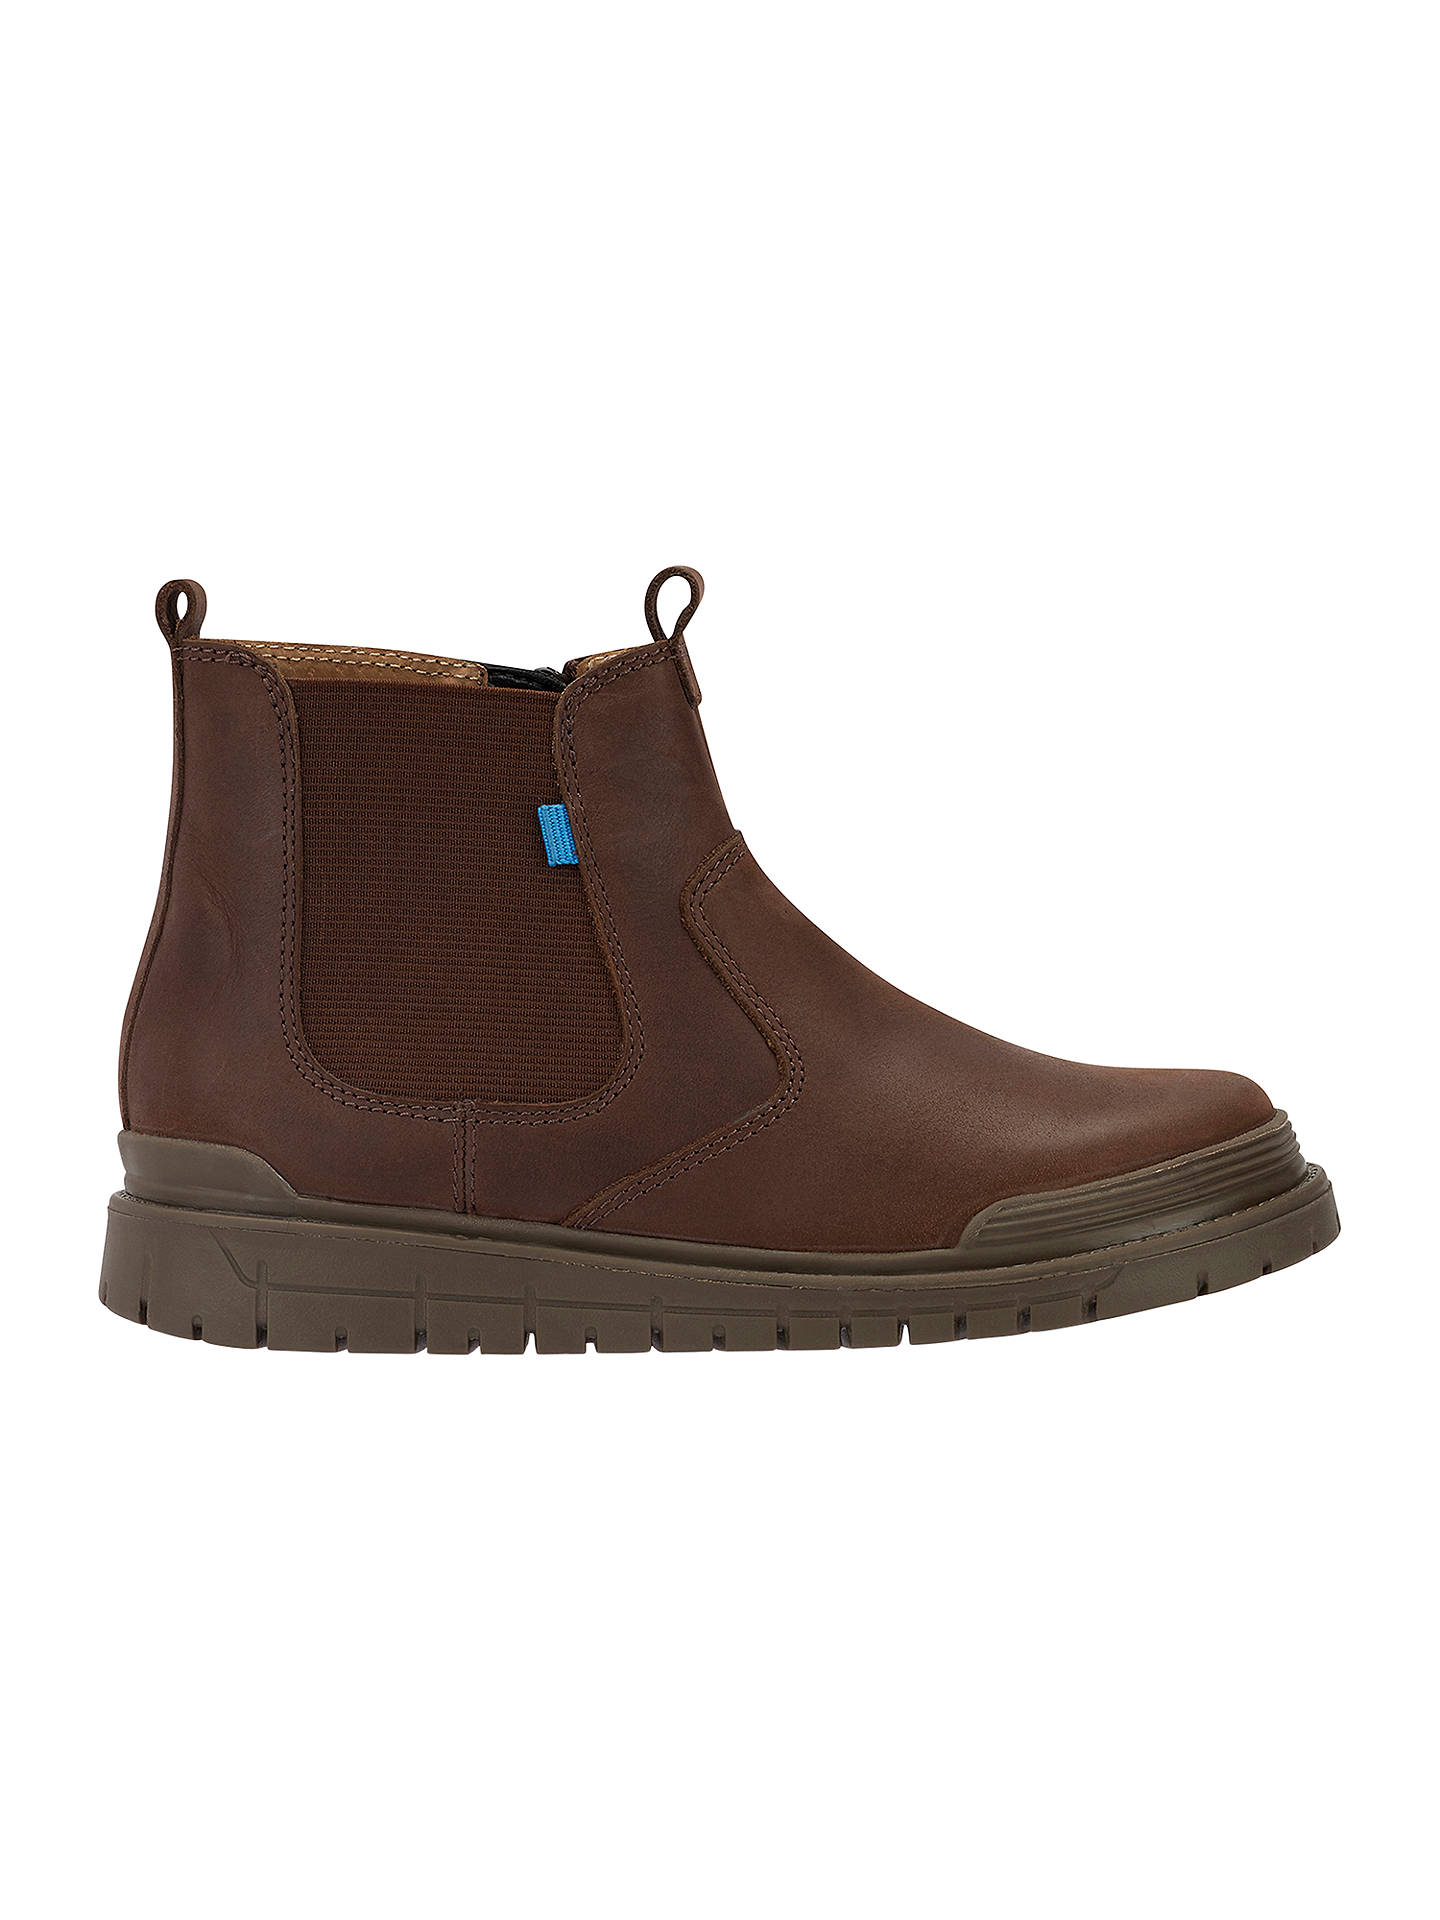 BuyStart-rite Children's Pre School Boost Boots, Brown, 7.5G Jnr Online at johnlewis.com